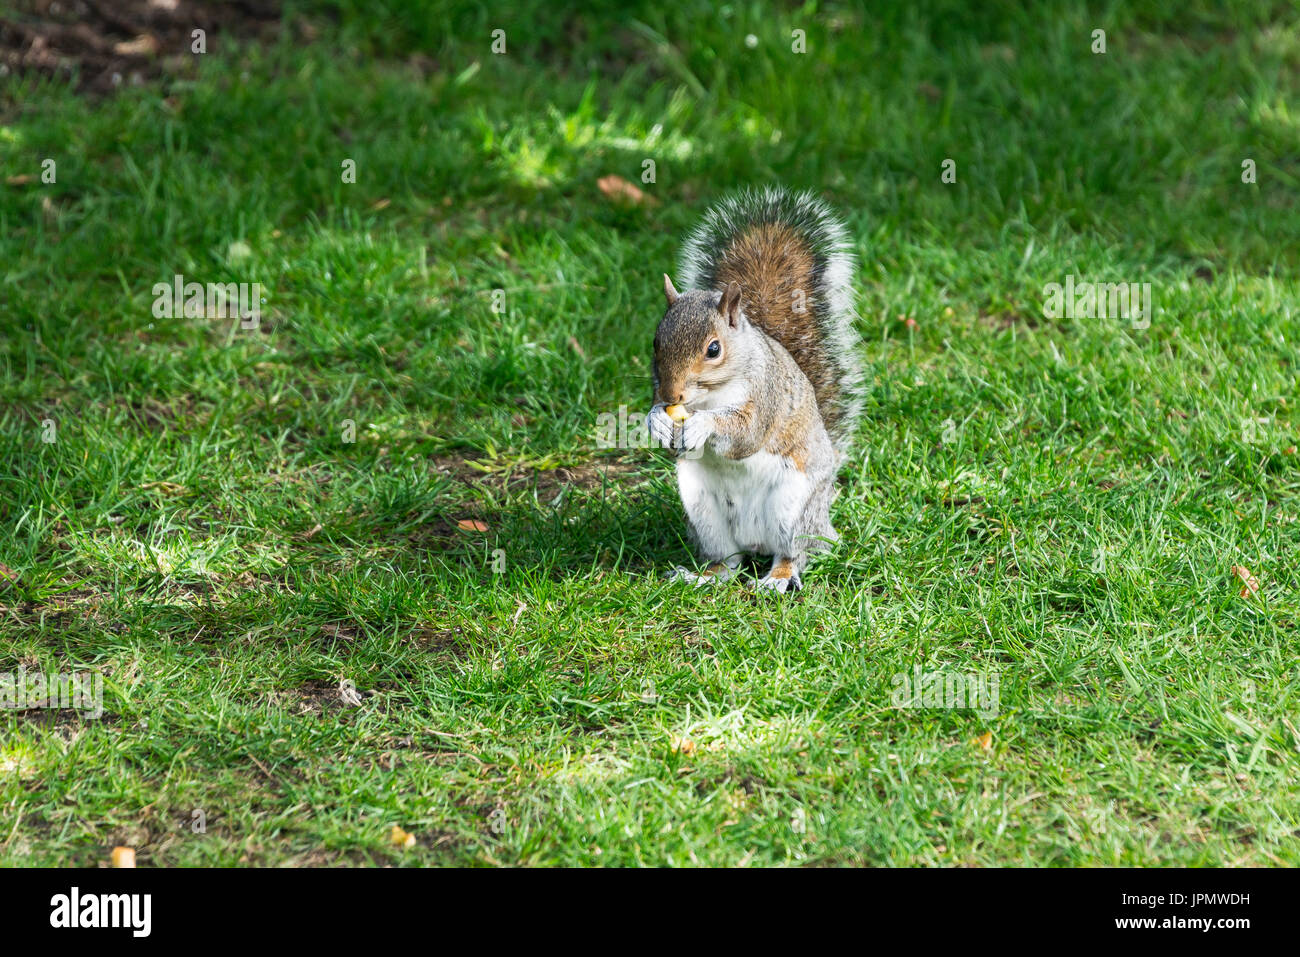 A grey squirrel (Sciurus carolinensis) feeding in a garden - Stock Image